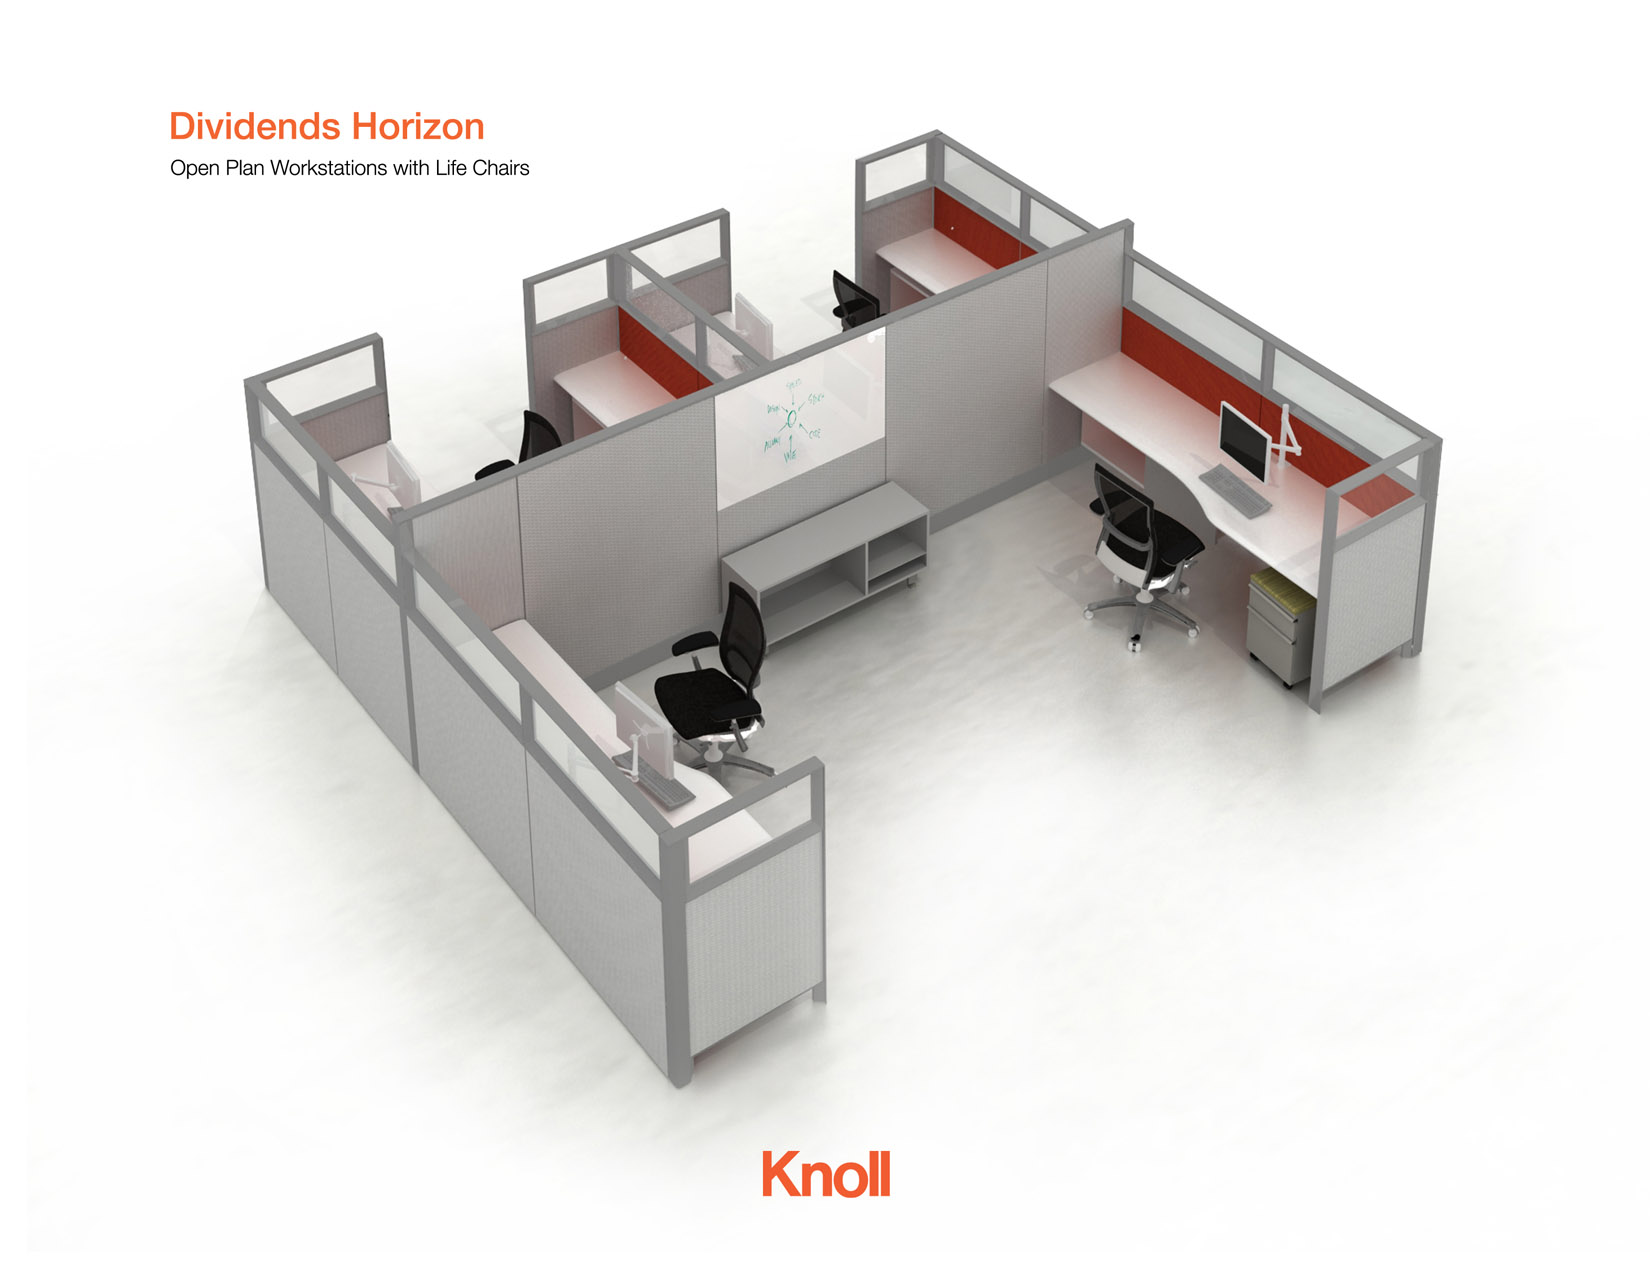 knoll life chairs. Knoll Furniture - Dividends Horizon Open Plan Workstations With Life Chairs N